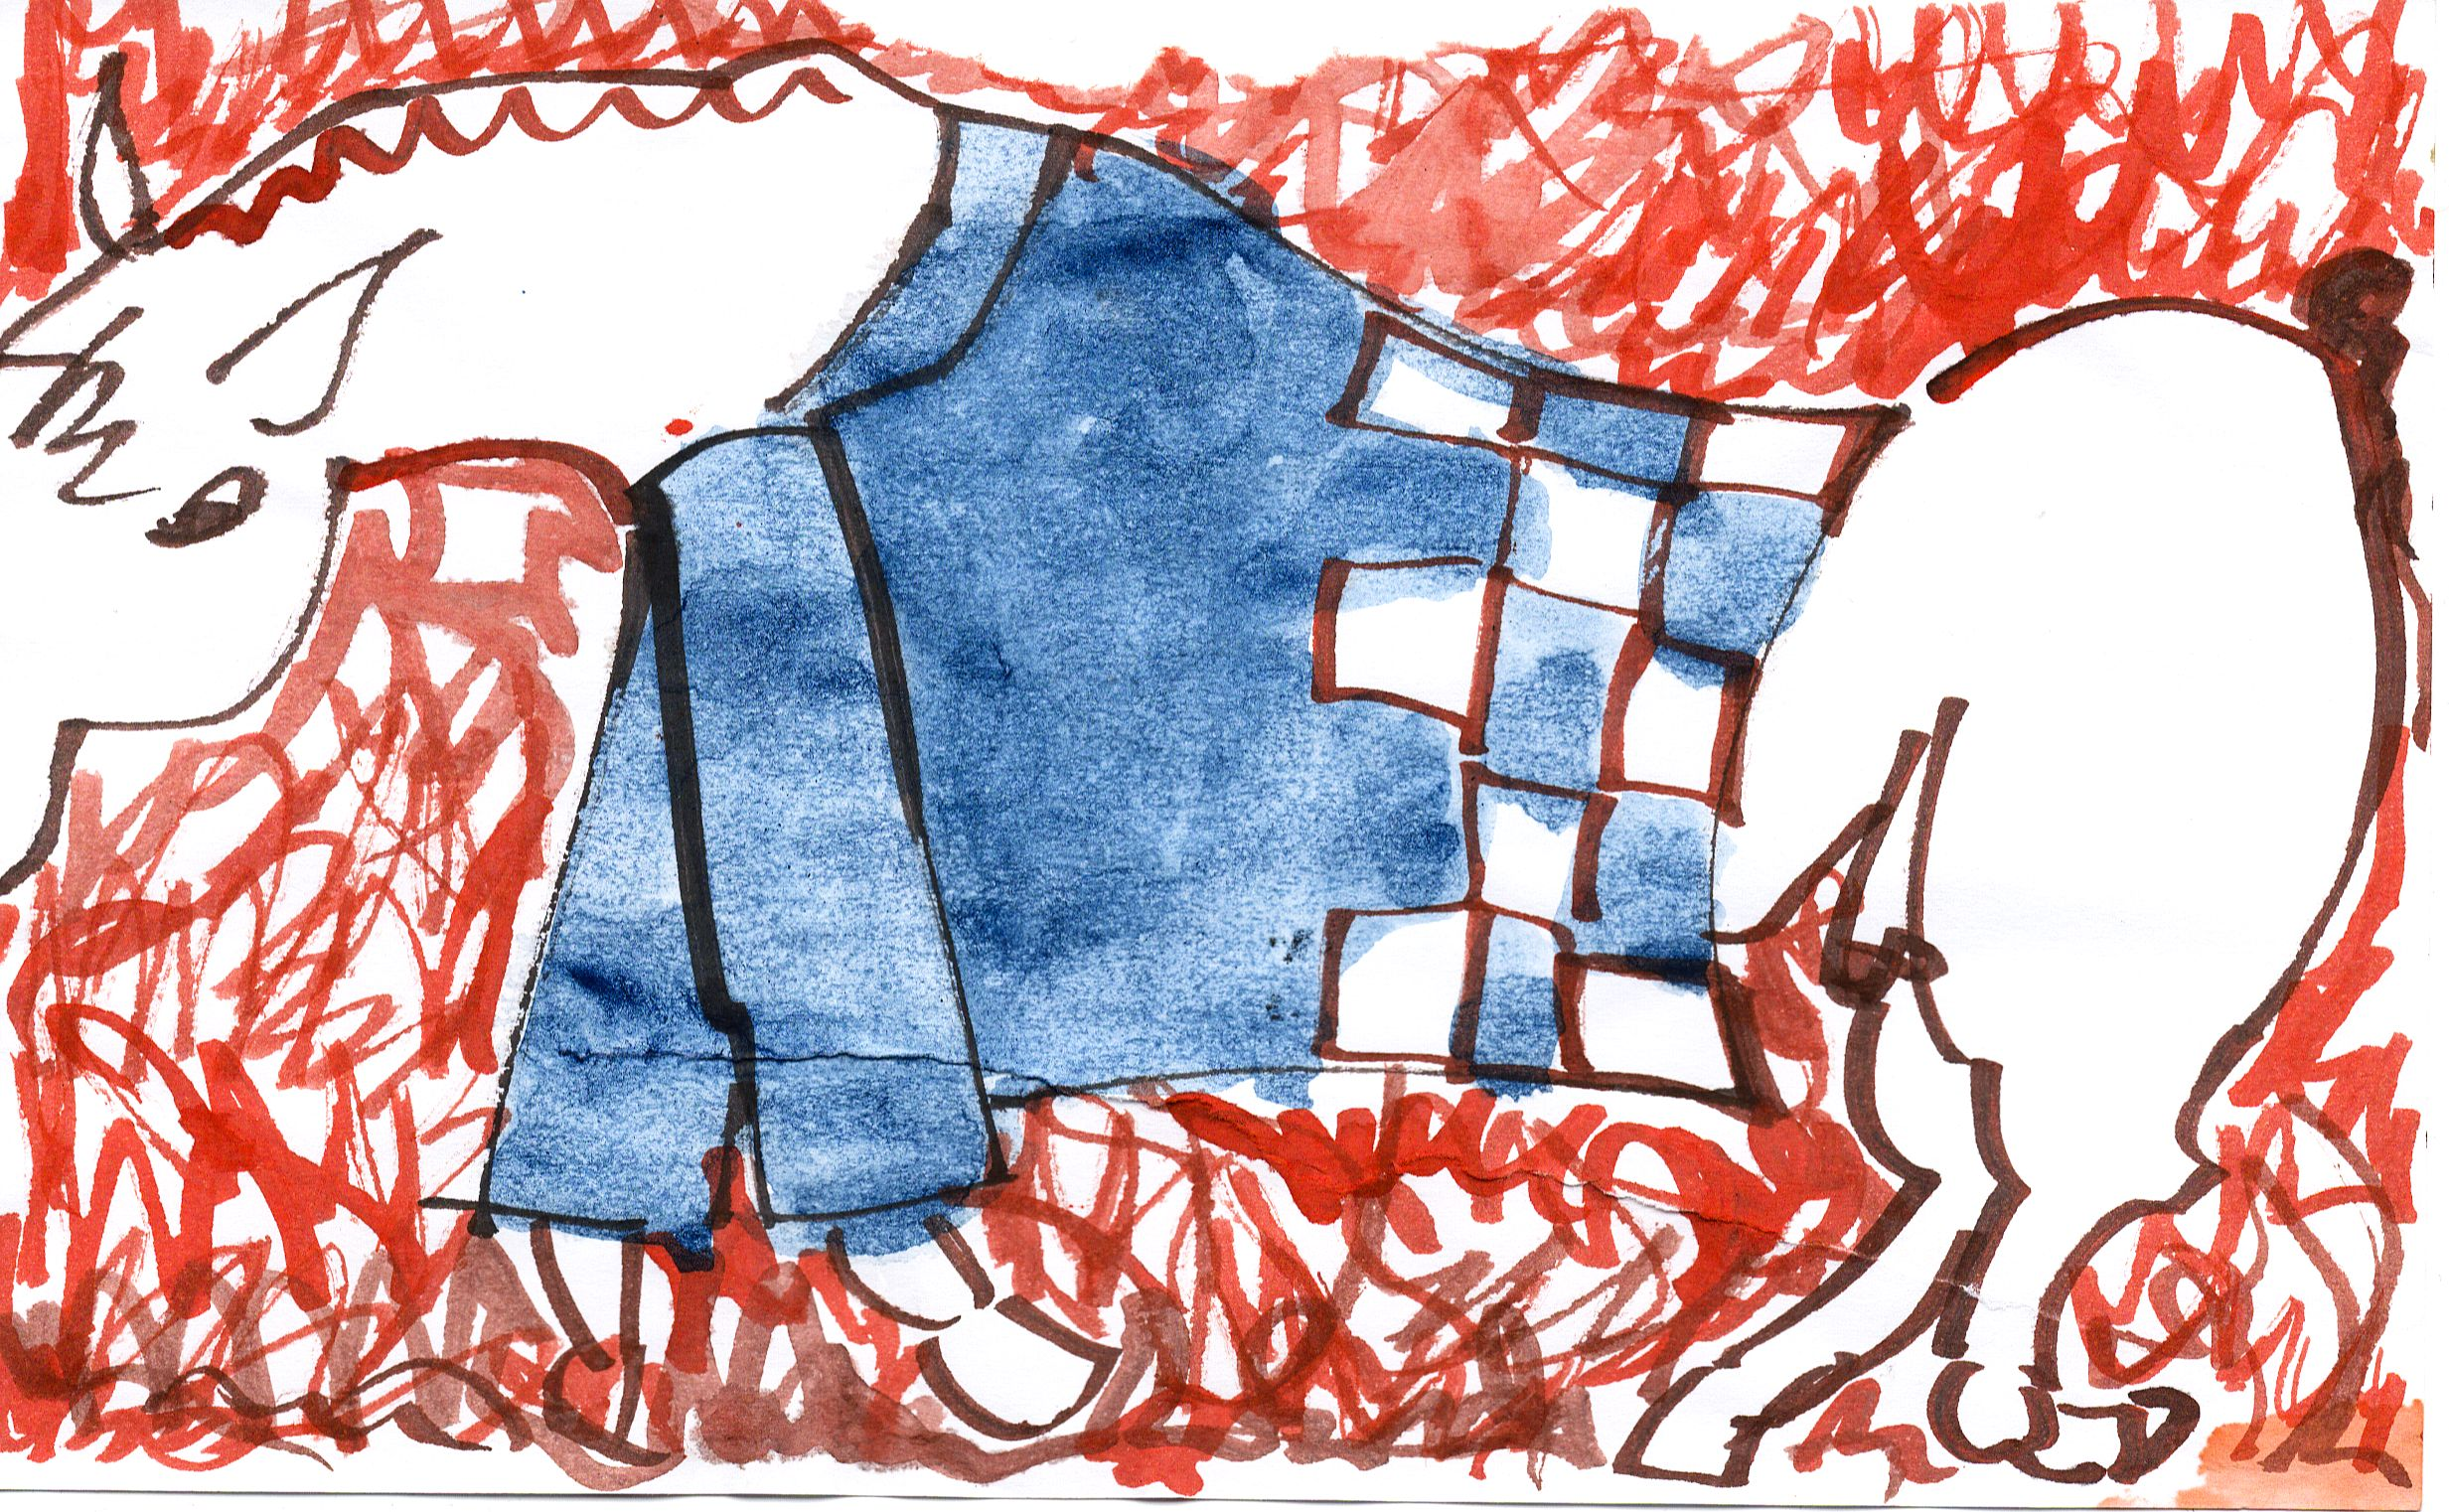 drawing_2012_horse (7 of 20).jpg